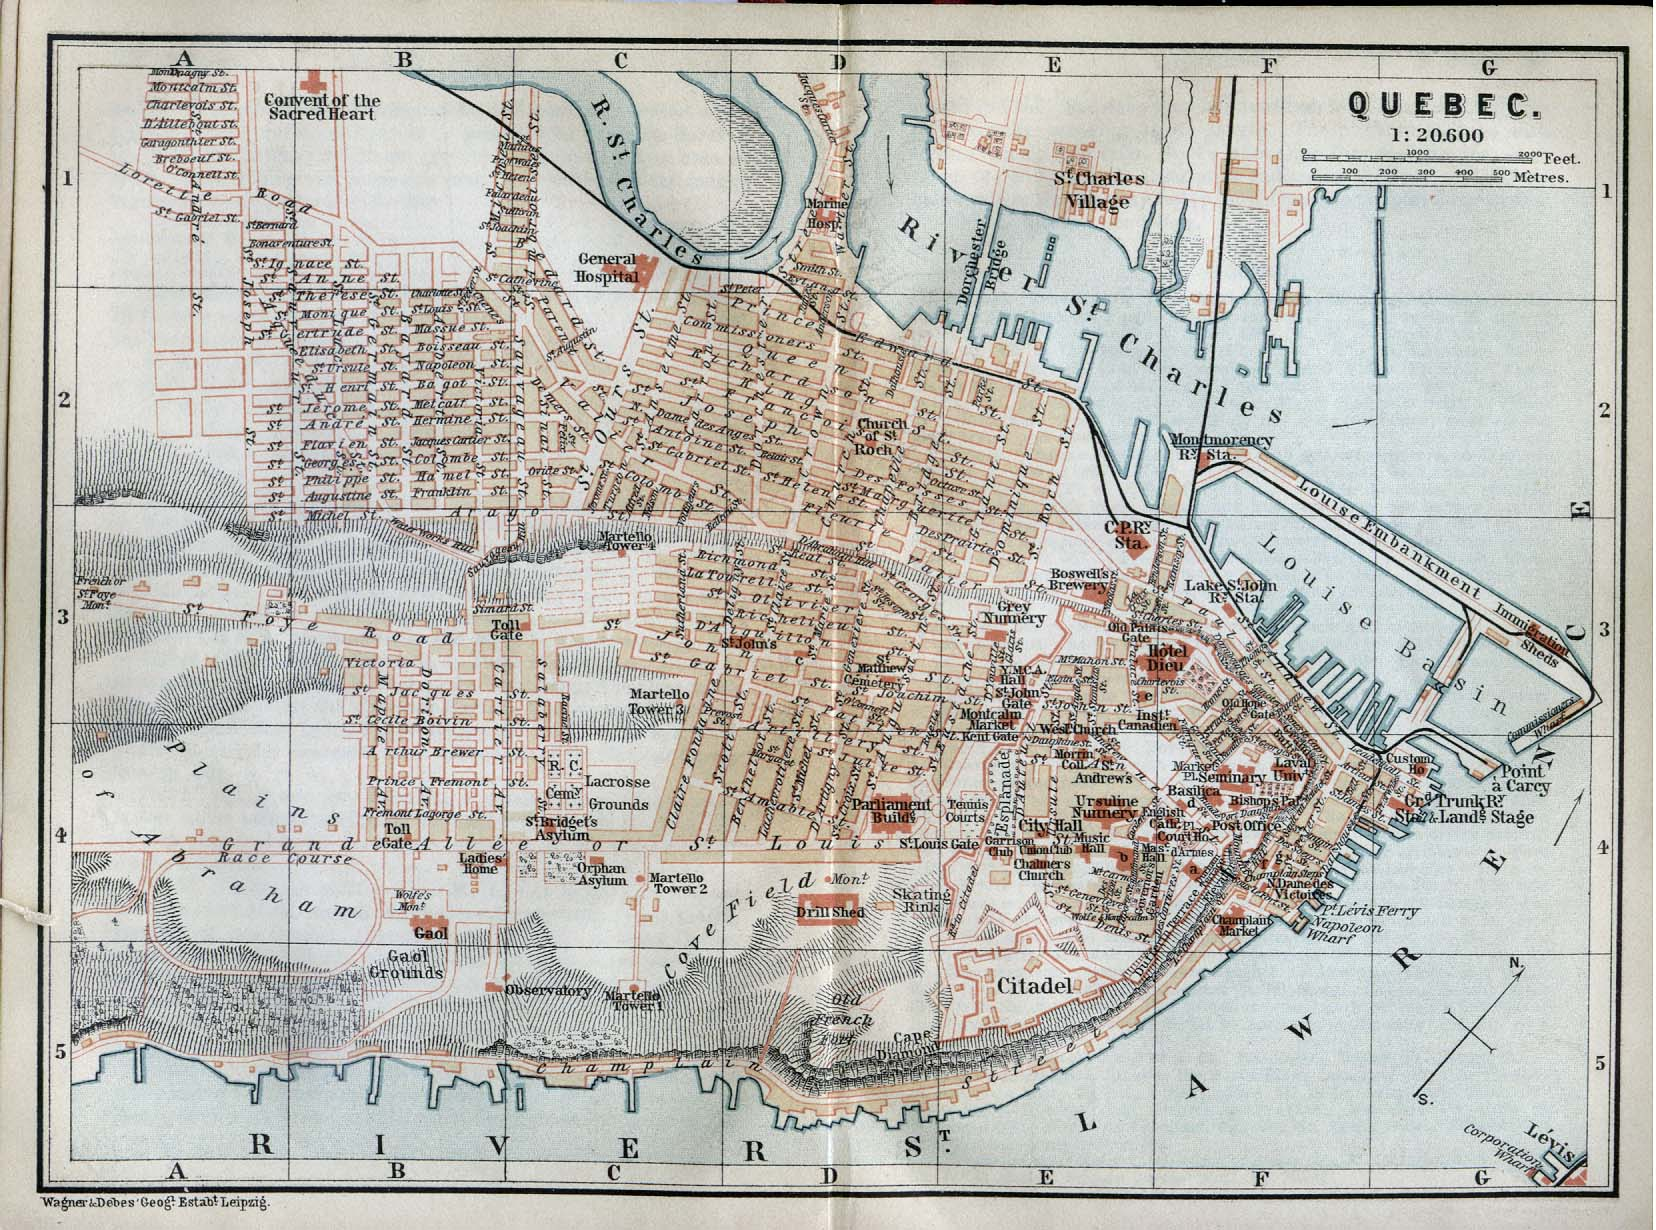 Quebec City, Canada, An old map of the city on canada town map, waterton lakes national park canada map, tadoussac canada map, quebec province zoom map, providence canada map, lorette canada map, beaufort sea canada location map, anchorage canada map, st john nb canada map, prince edward island map, iqaluit canada map, city of calgary canada map, albany canada map, tremblant canada map, regina canada map, lake nipissing canada map, cn tower canada map, edmonton canada map, montreal canada map, lake of the woods canada map,